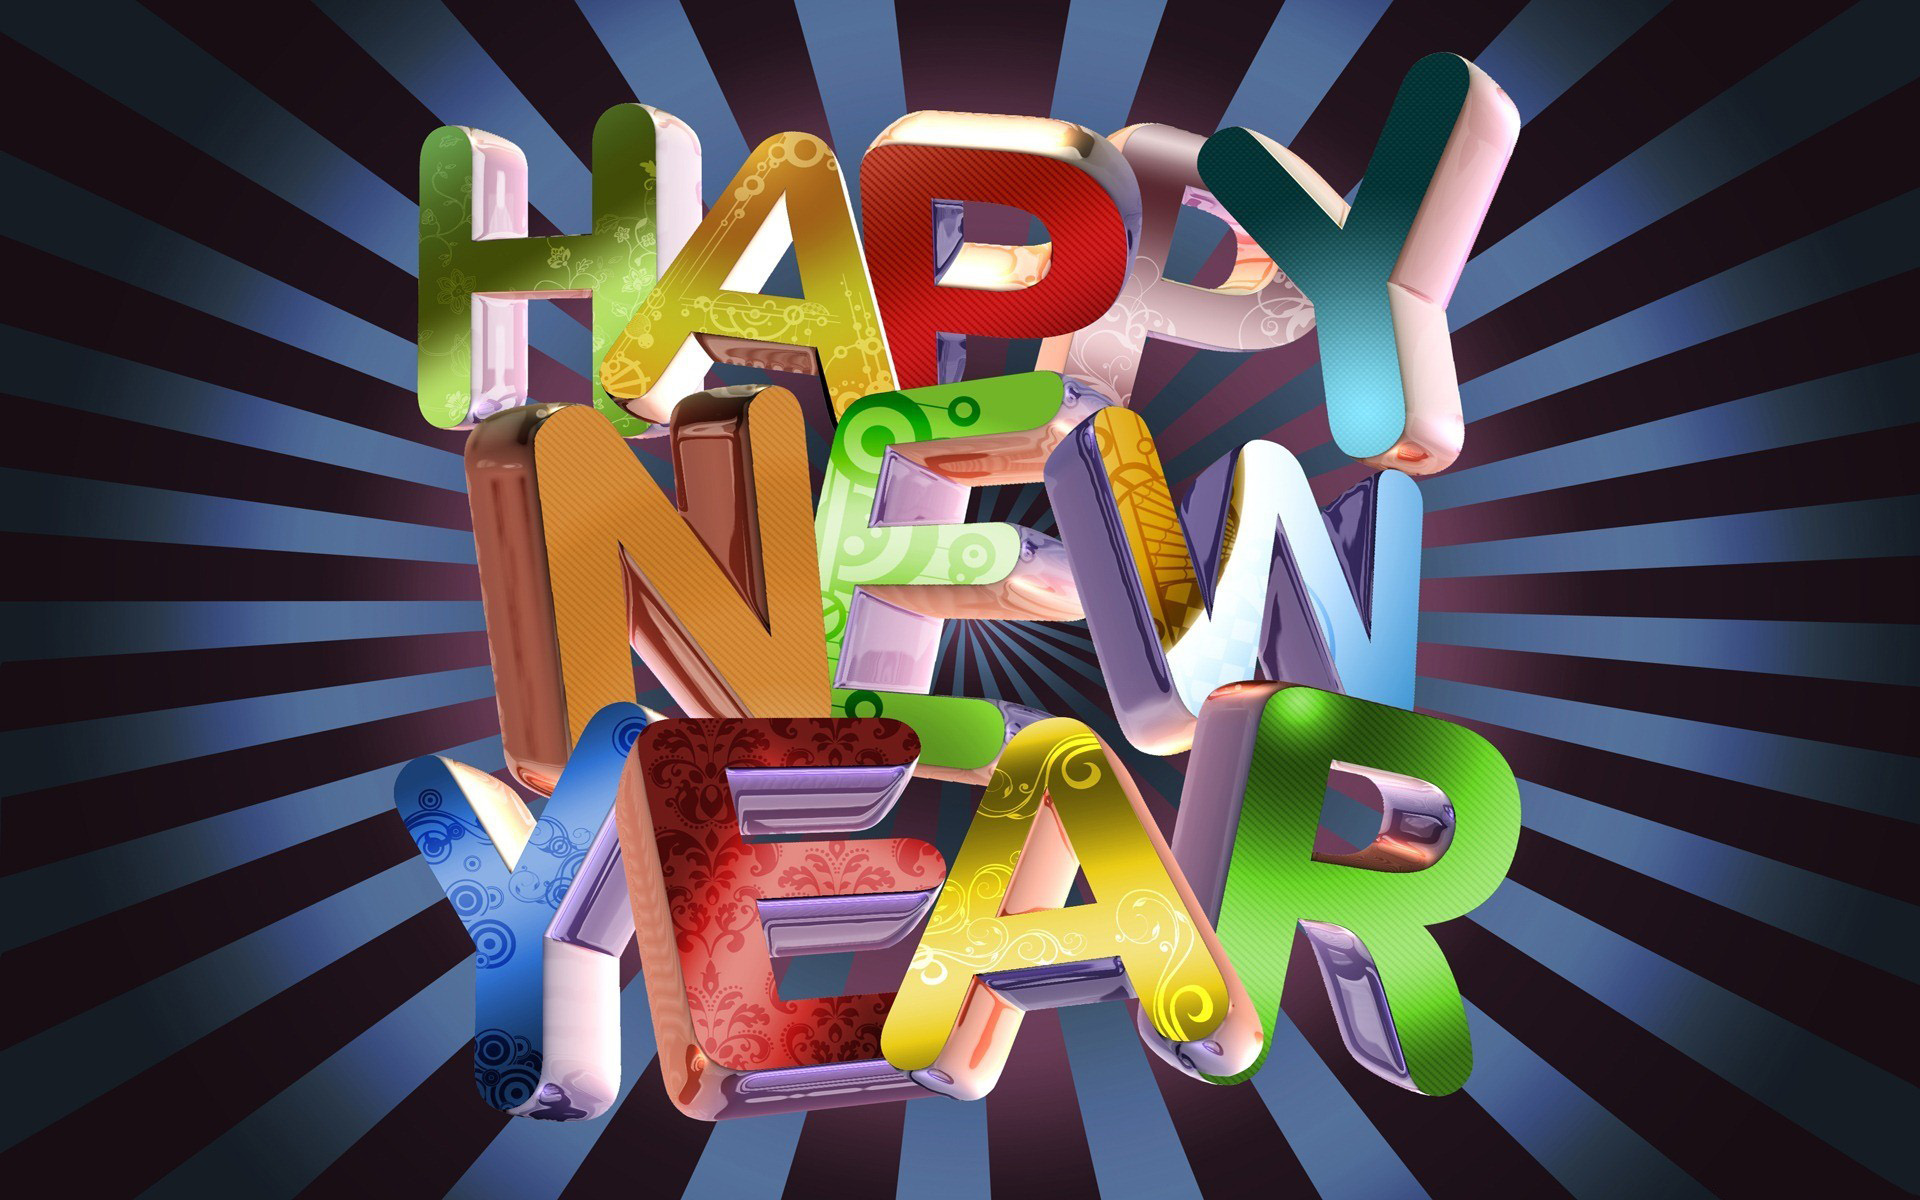 Fantastic Wallpaper Name Jitendra - happy-new-year-2015-3d-wallpapers-1  You Should Have_4590100.jpg